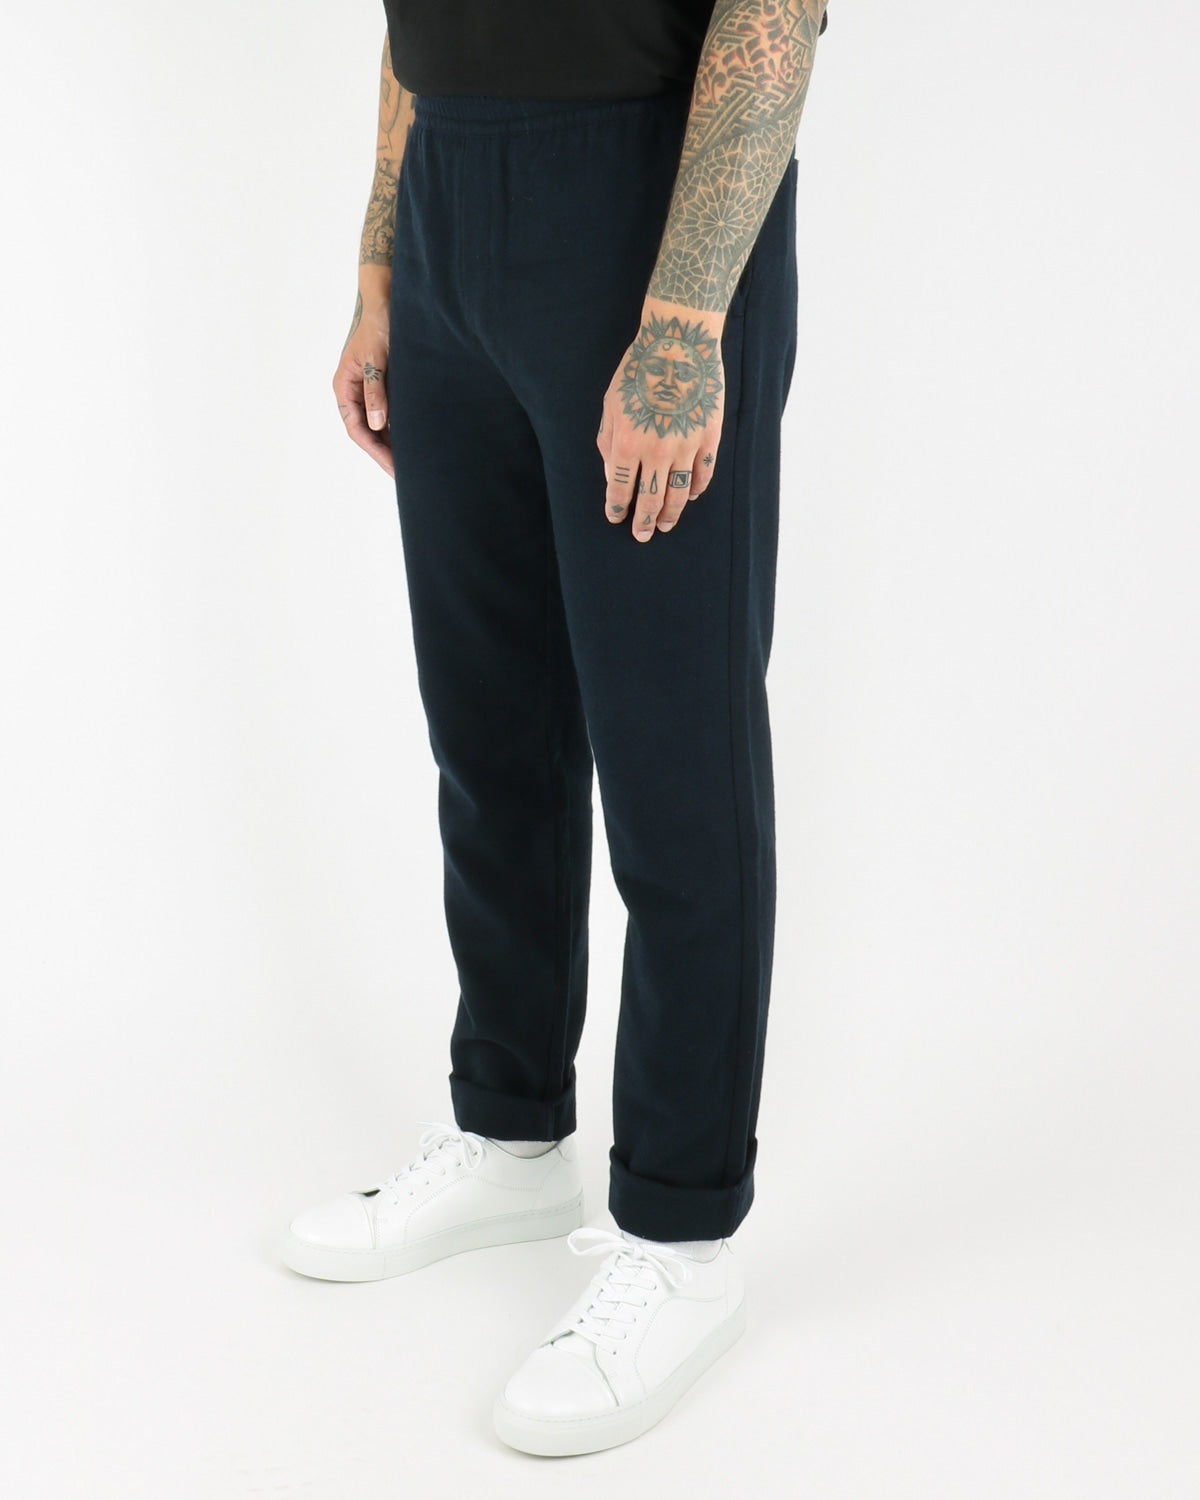 libertine libertine_slow pants_navy_view_2_2